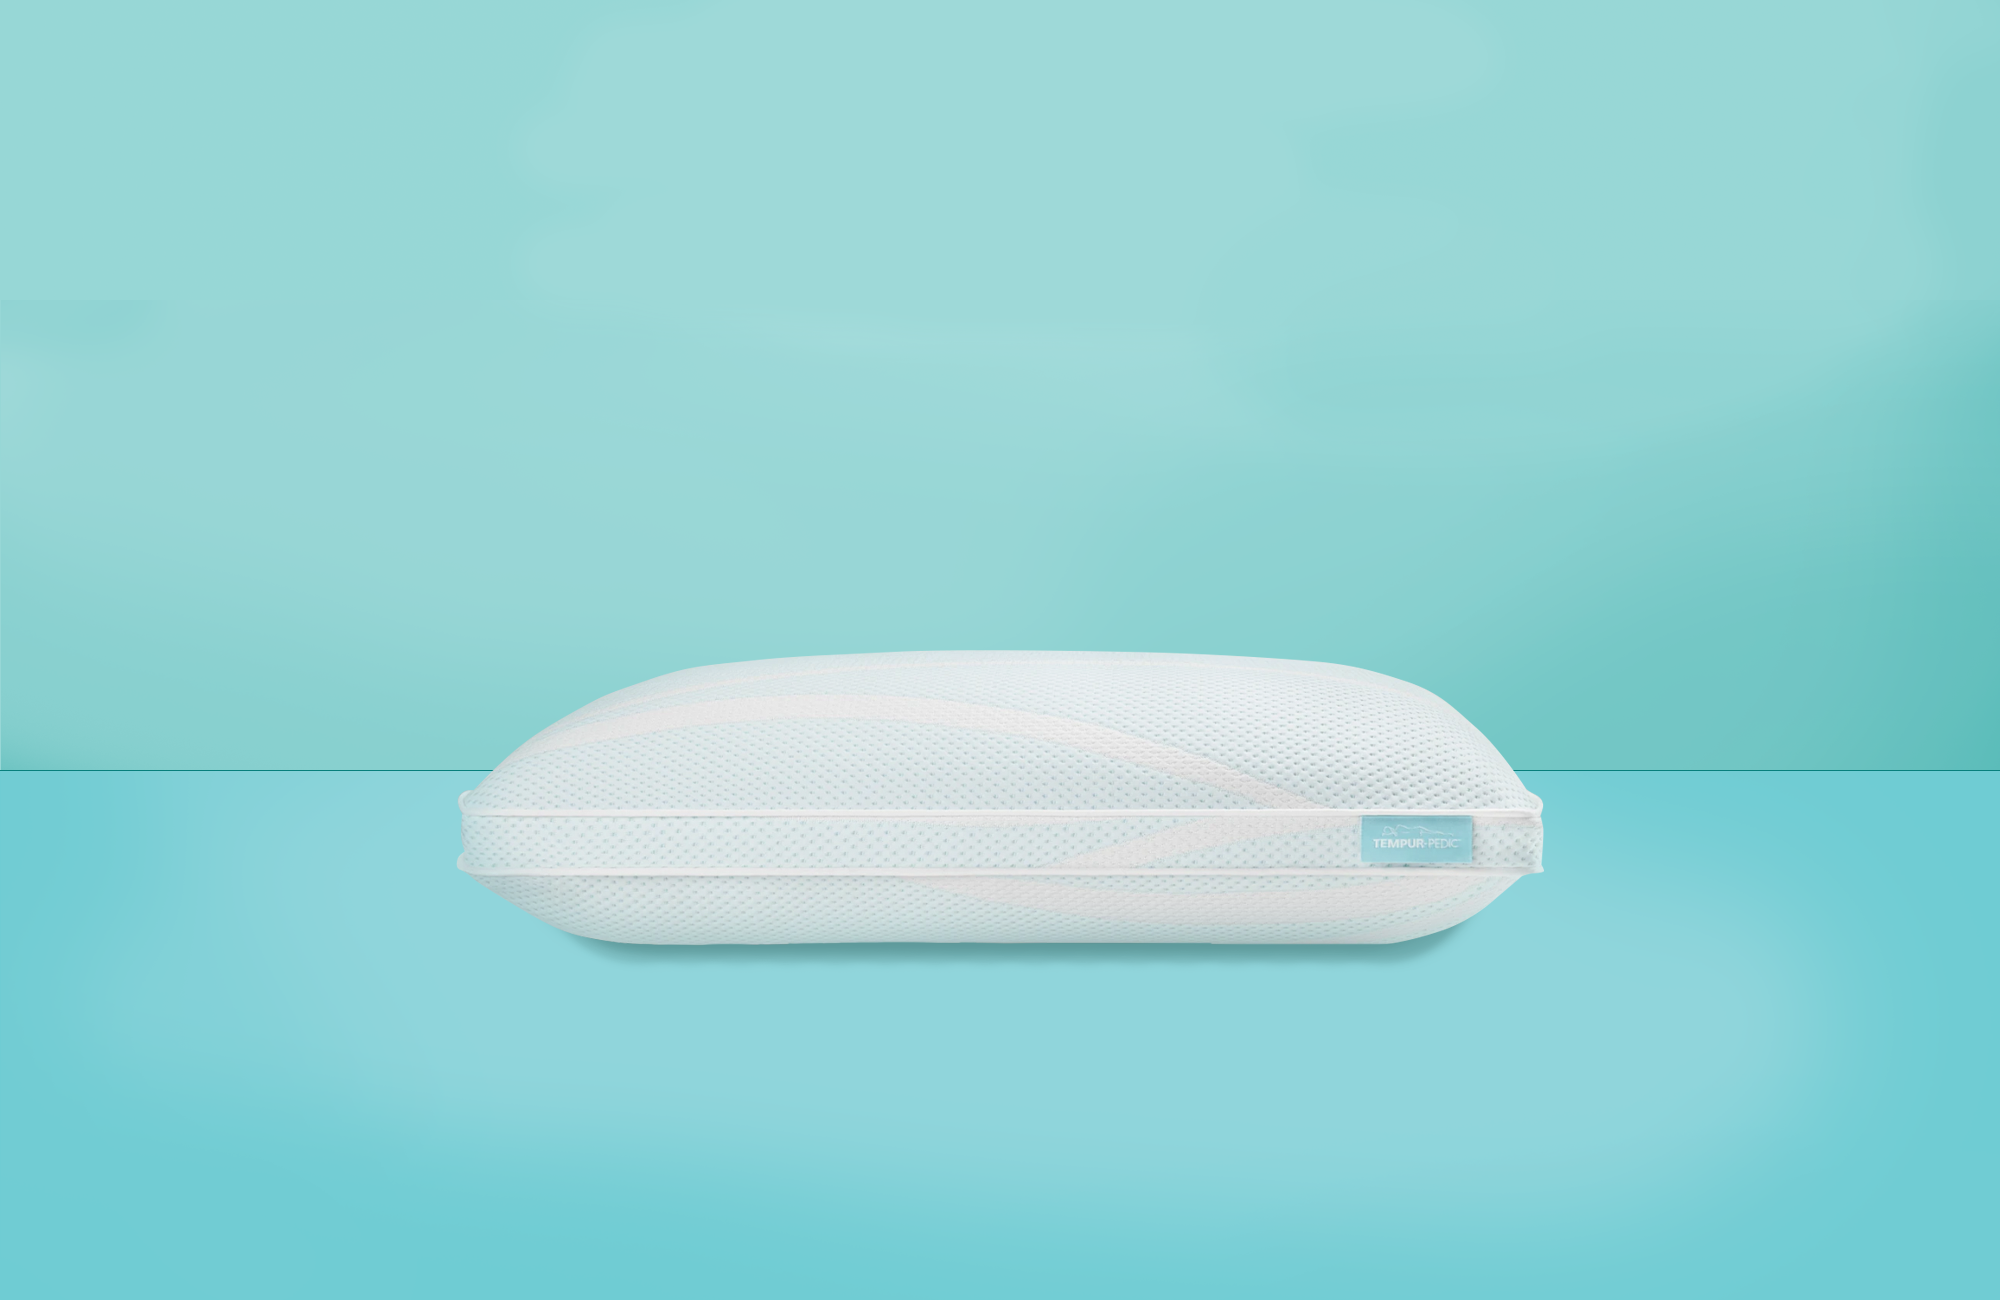 9 Best Pillows for Side Sleepers, According to Experts